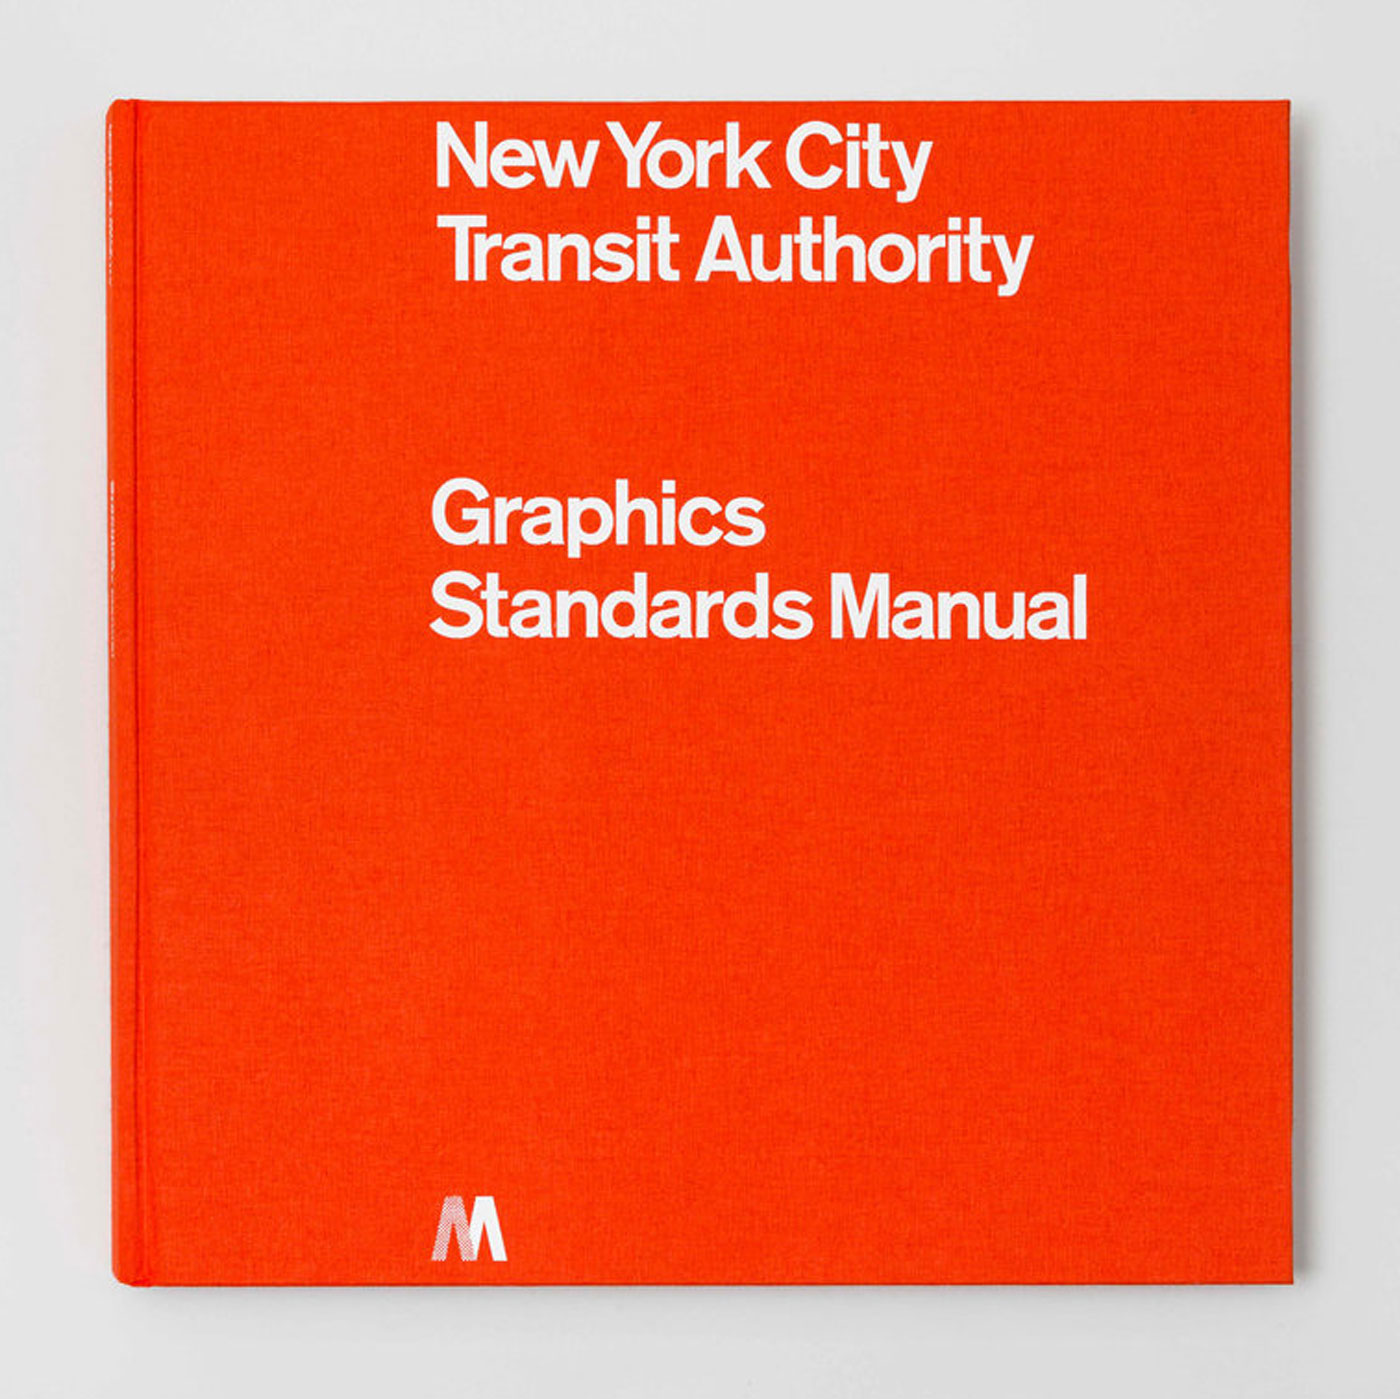 New York City Transit Authority: Graphics Standards Manual